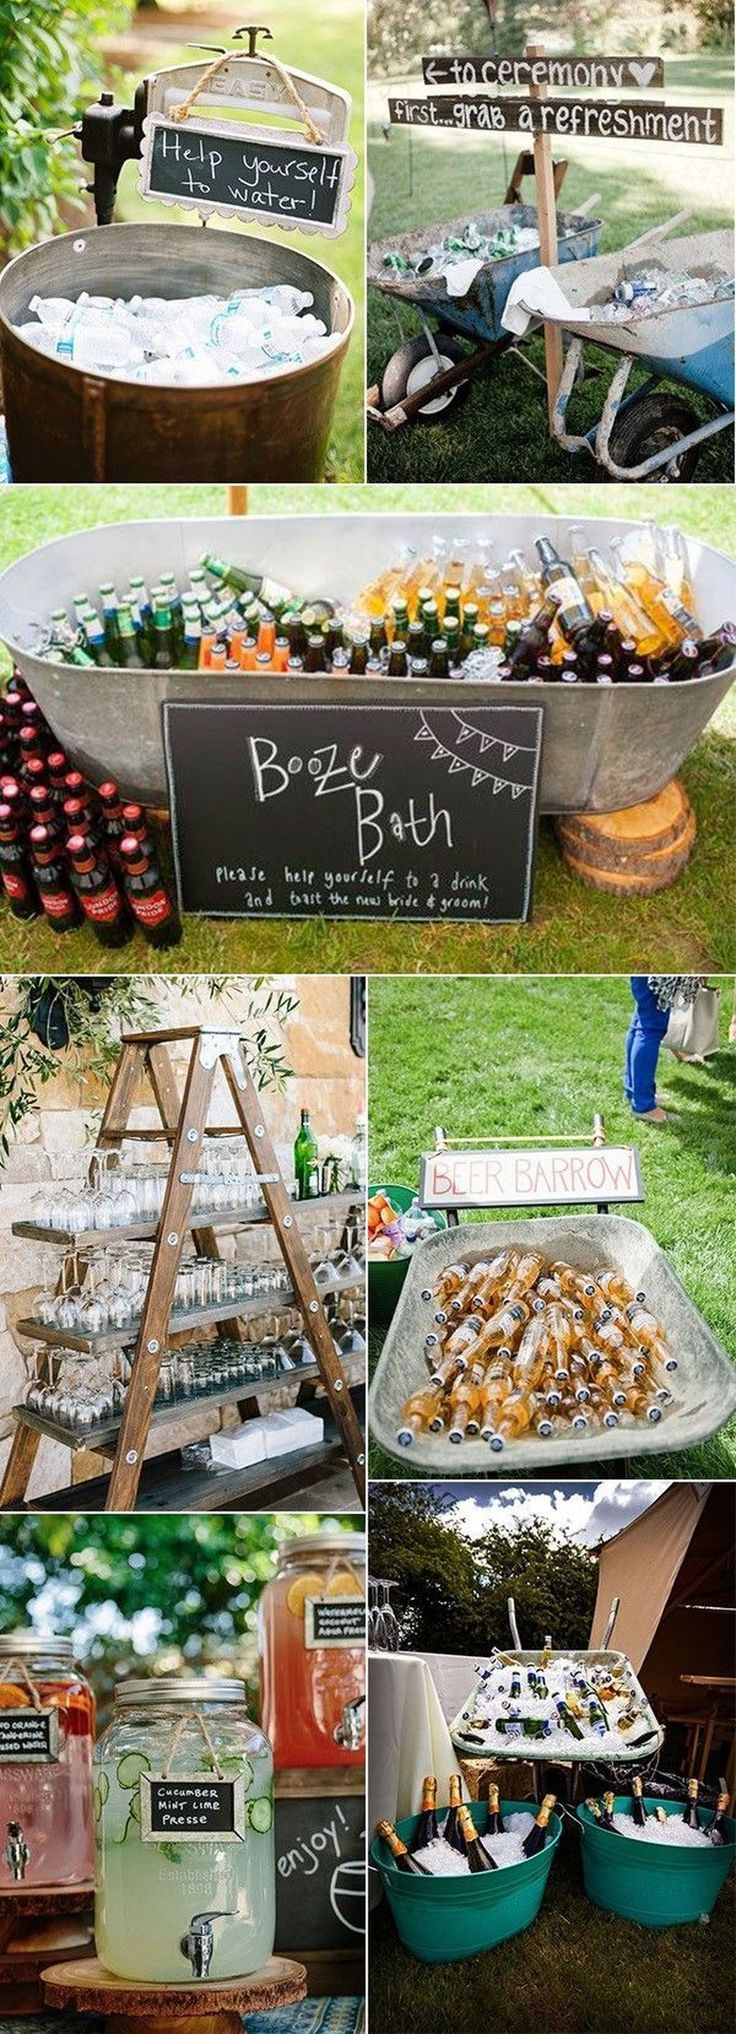 40+ Incredible Summer Wedding Design Ideas For Outdoor To Copy Asap – #ASAP #Cop…